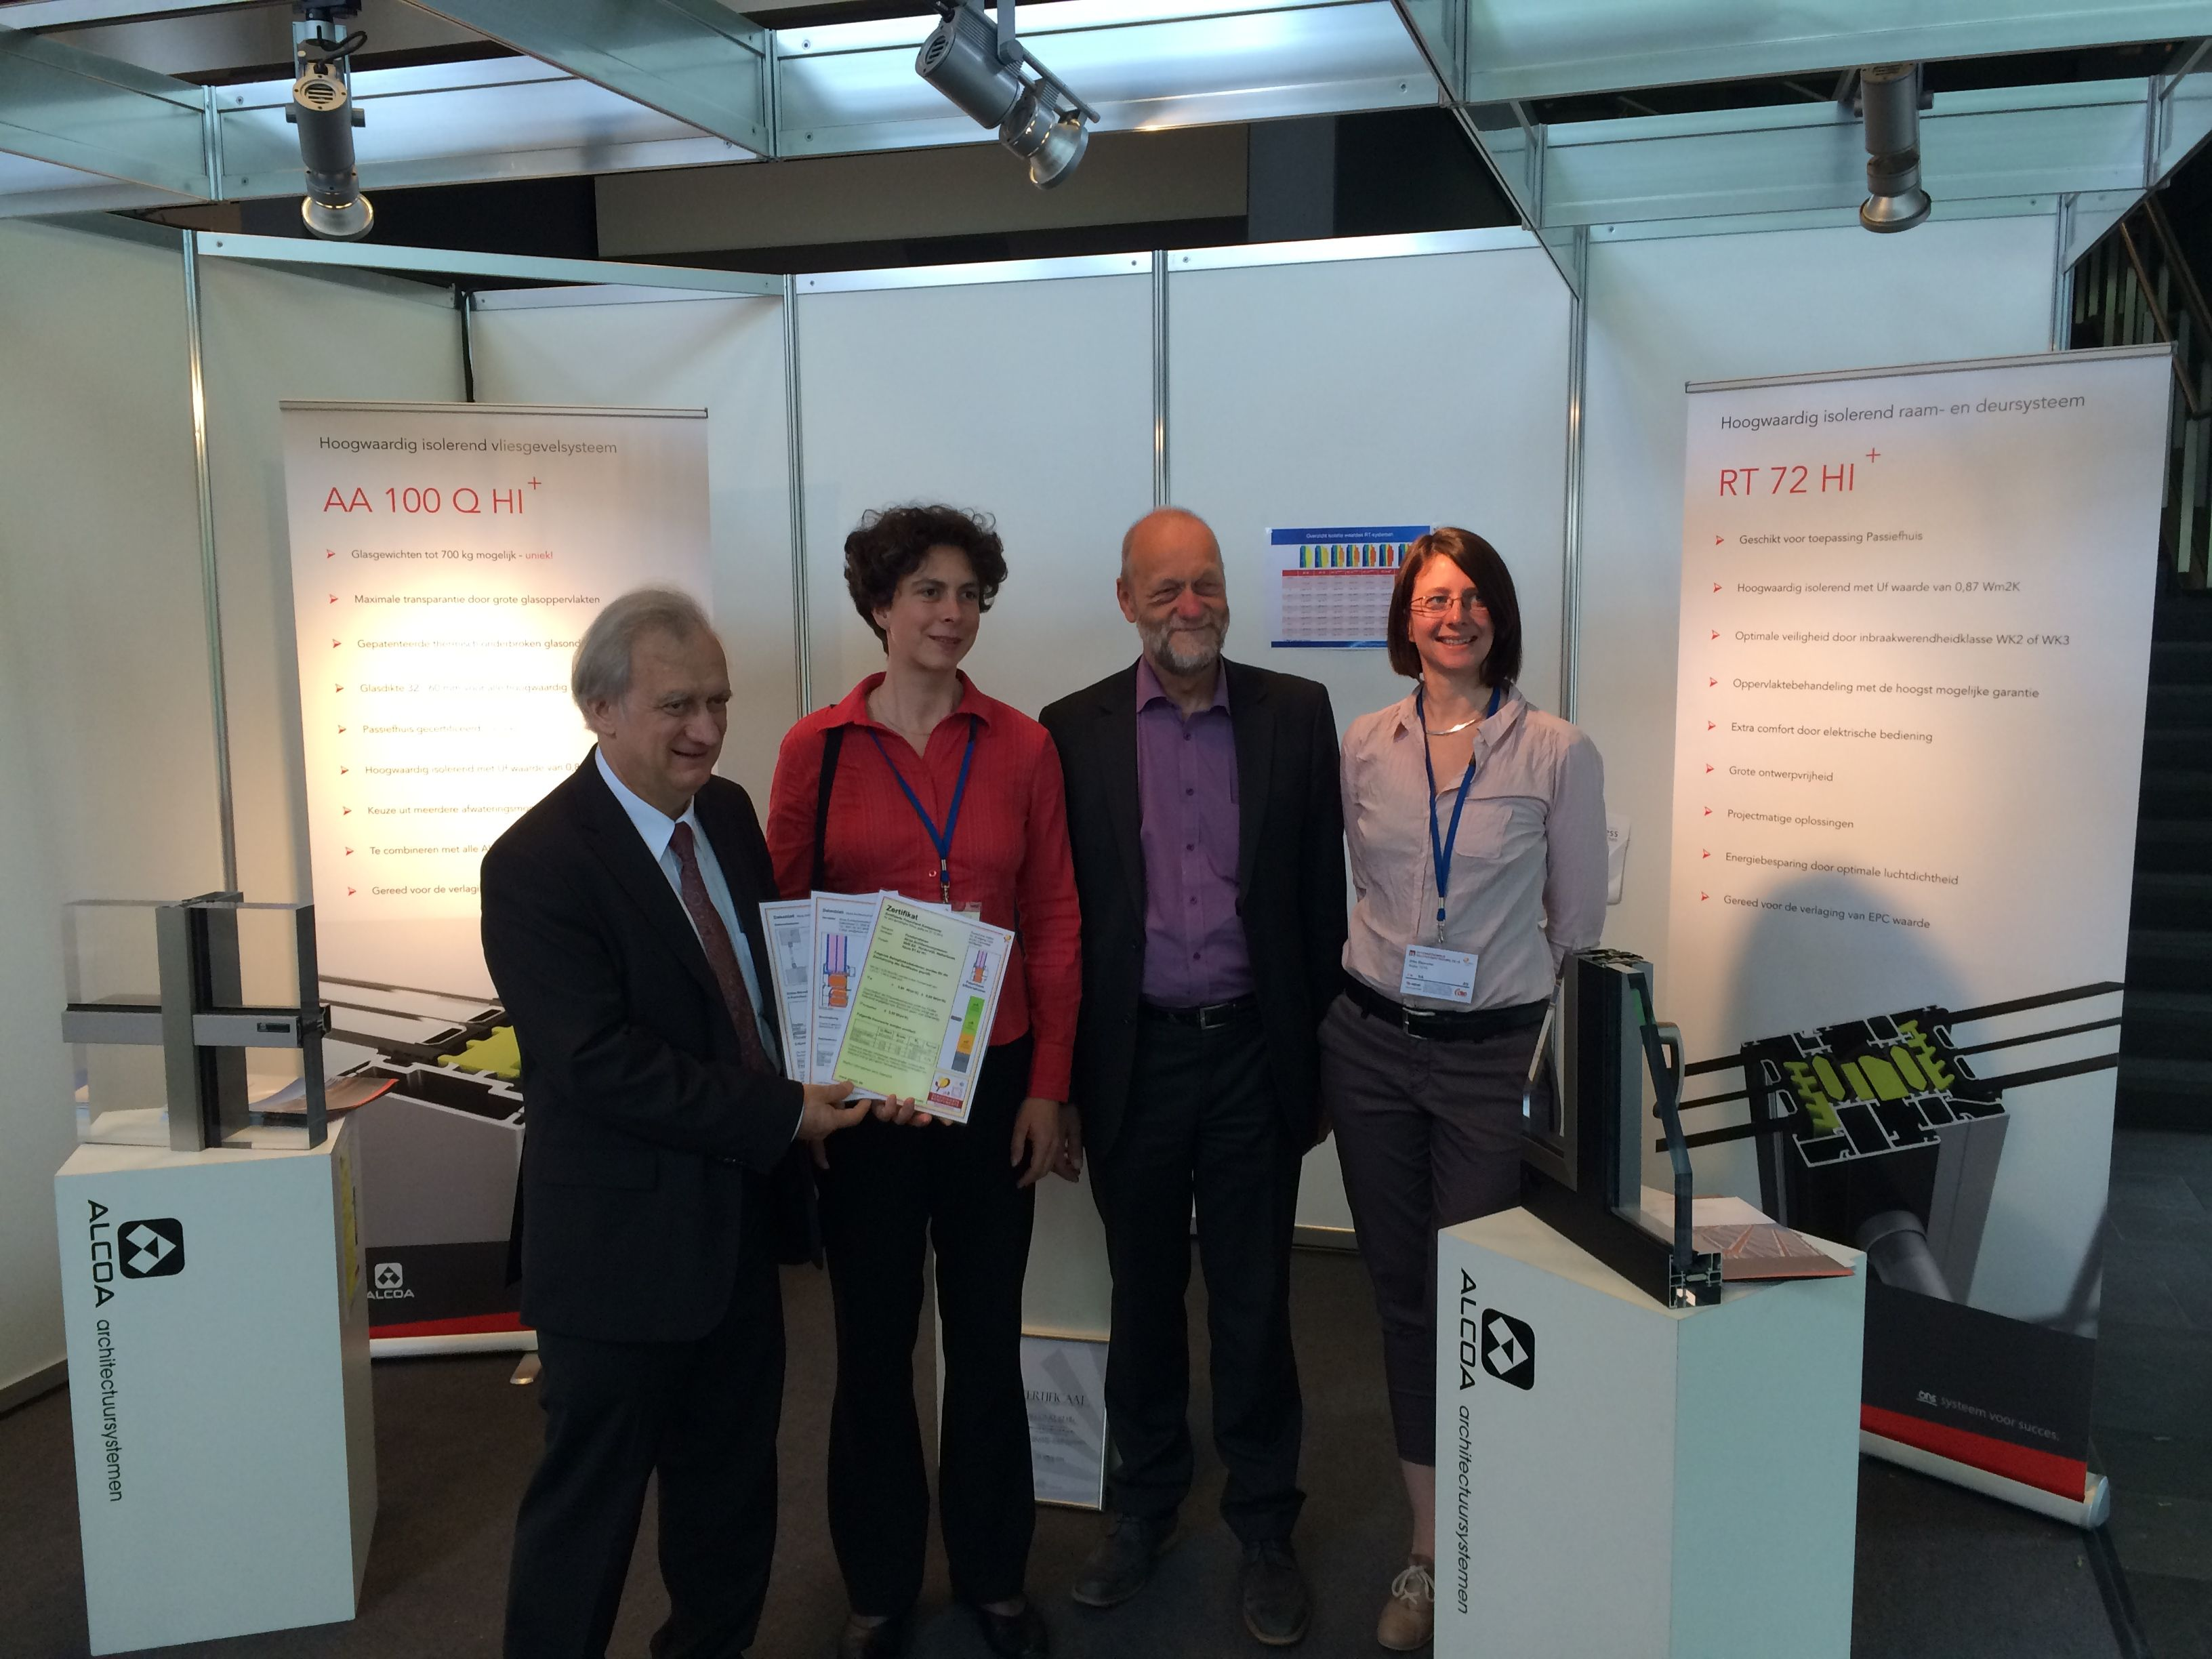 Delivering of the certificate by Dr. Wolfgang Feist, CEO Passive House Institute Darmstadt.  Uitreiking van het certificaat door Dr. Wolfgang Feist, CEO Passief Huis Instituut Darmstadt.